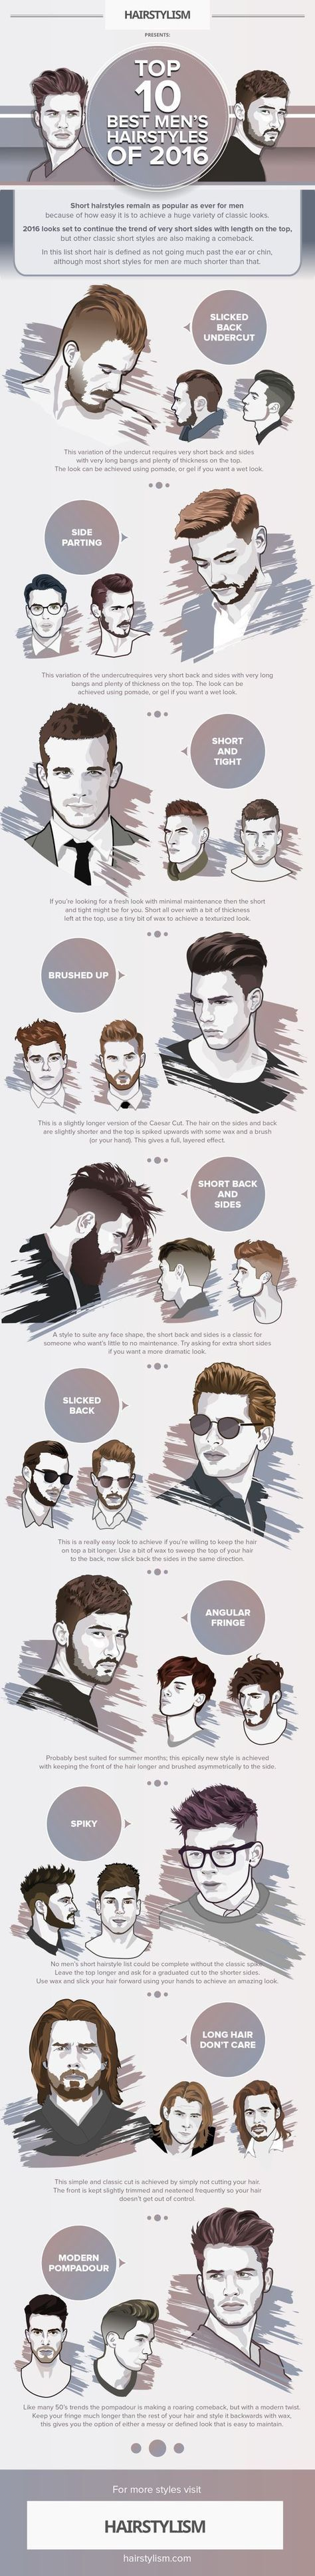 best things i like images on pinterest balcony barbers and facts